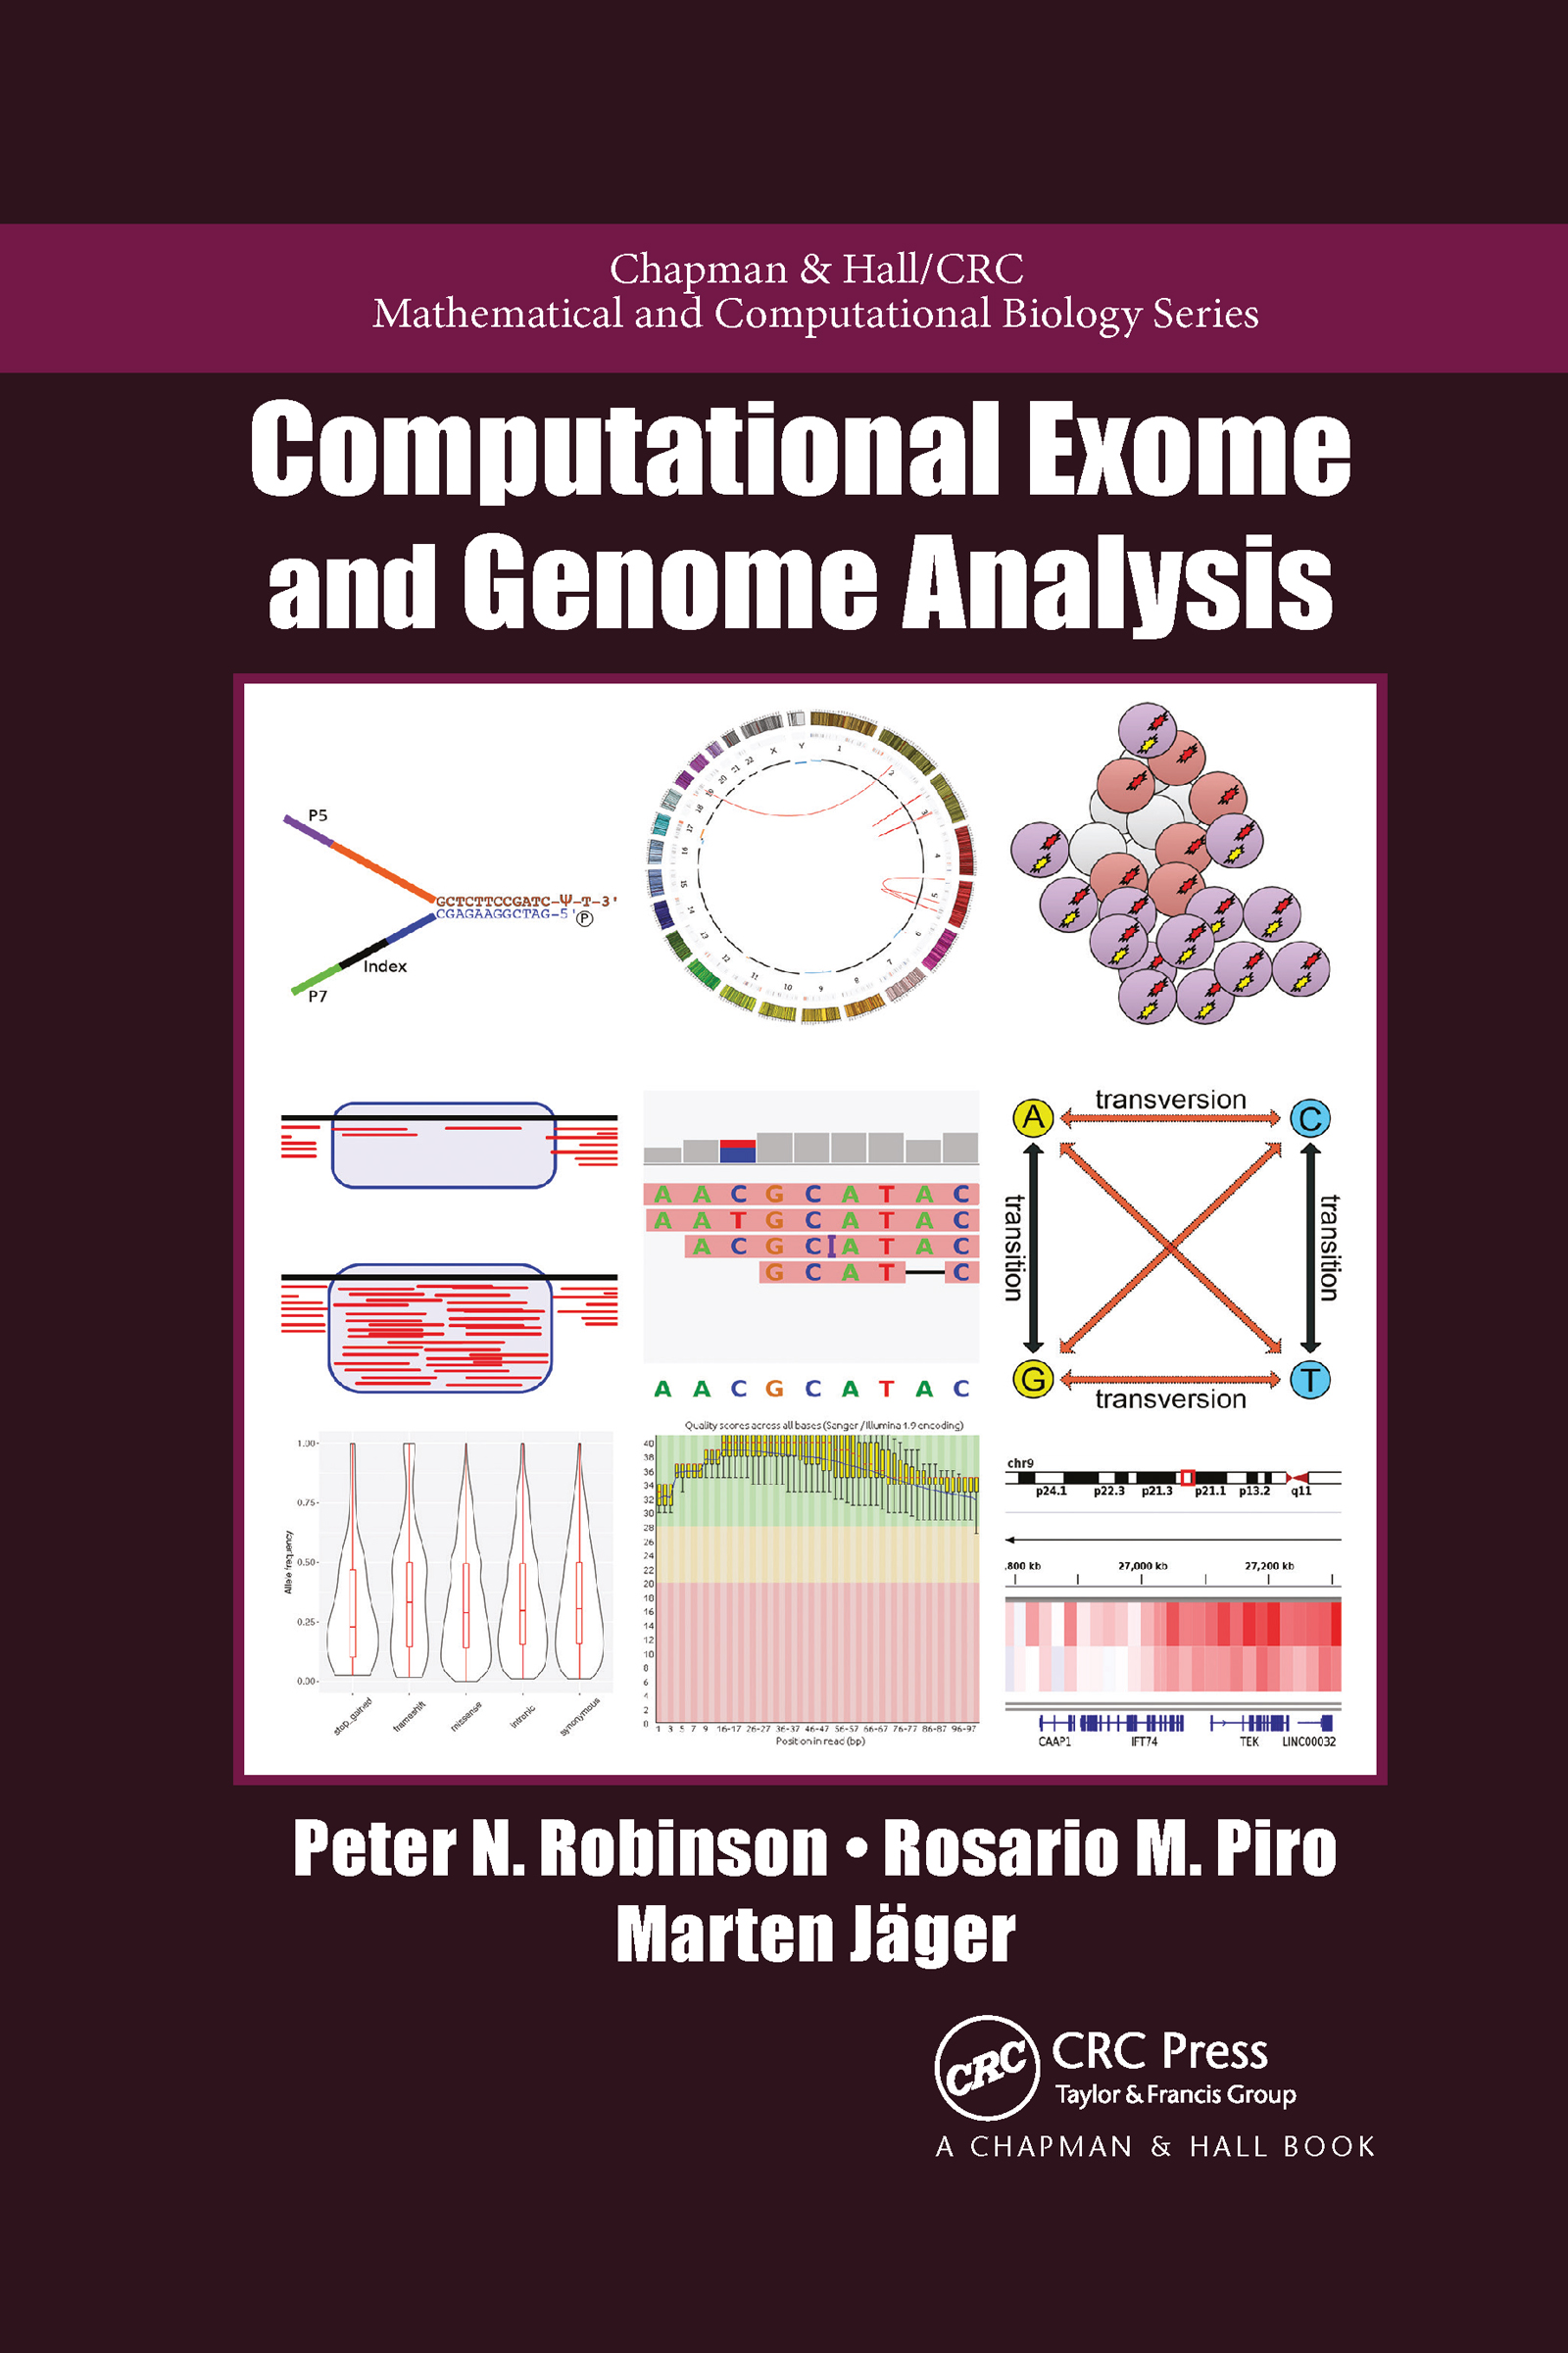 Computational Exome and Genome Analysis